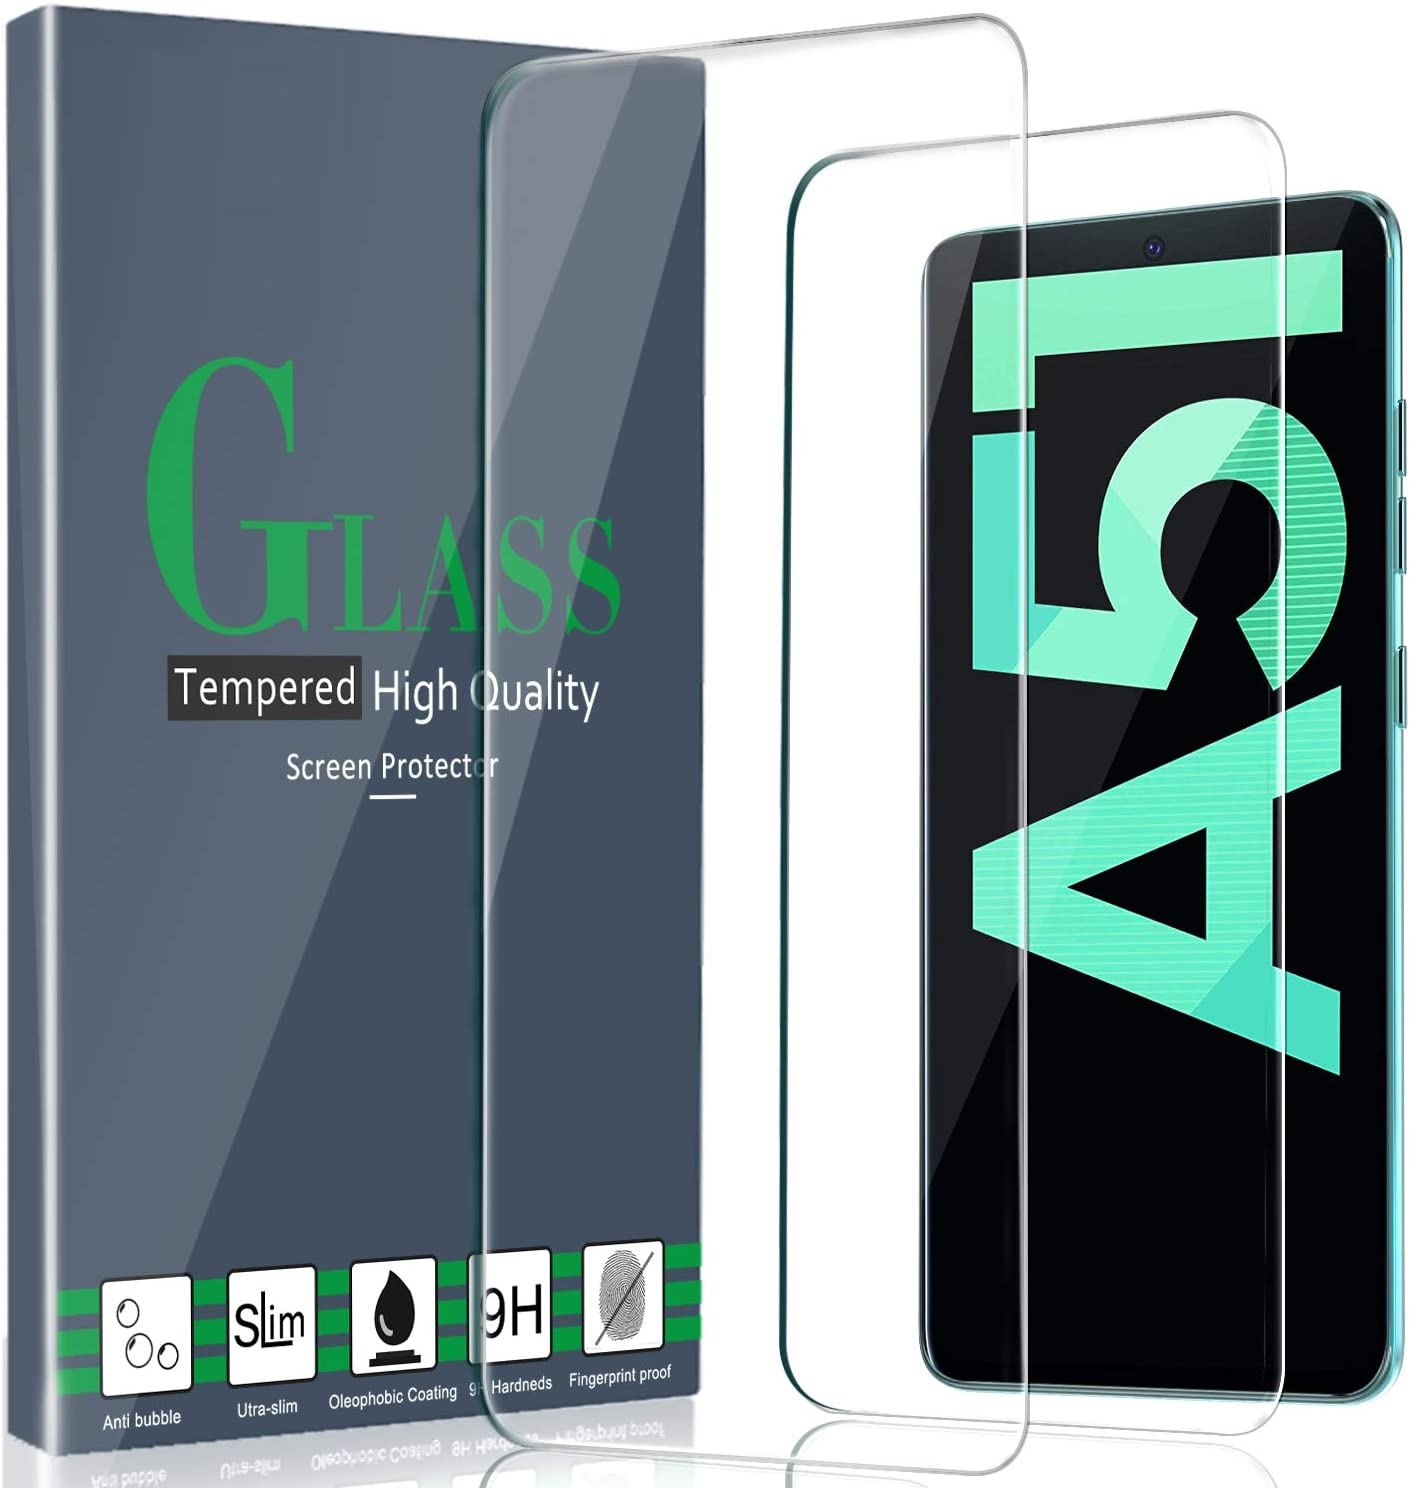 Tempered Glass For Samsung Galaxy A30 A50 Screen Protector 9H Safety Protective Film On A 30 50 A70 A40 A60 M20 M30 A10 A51 A71 Pakistan